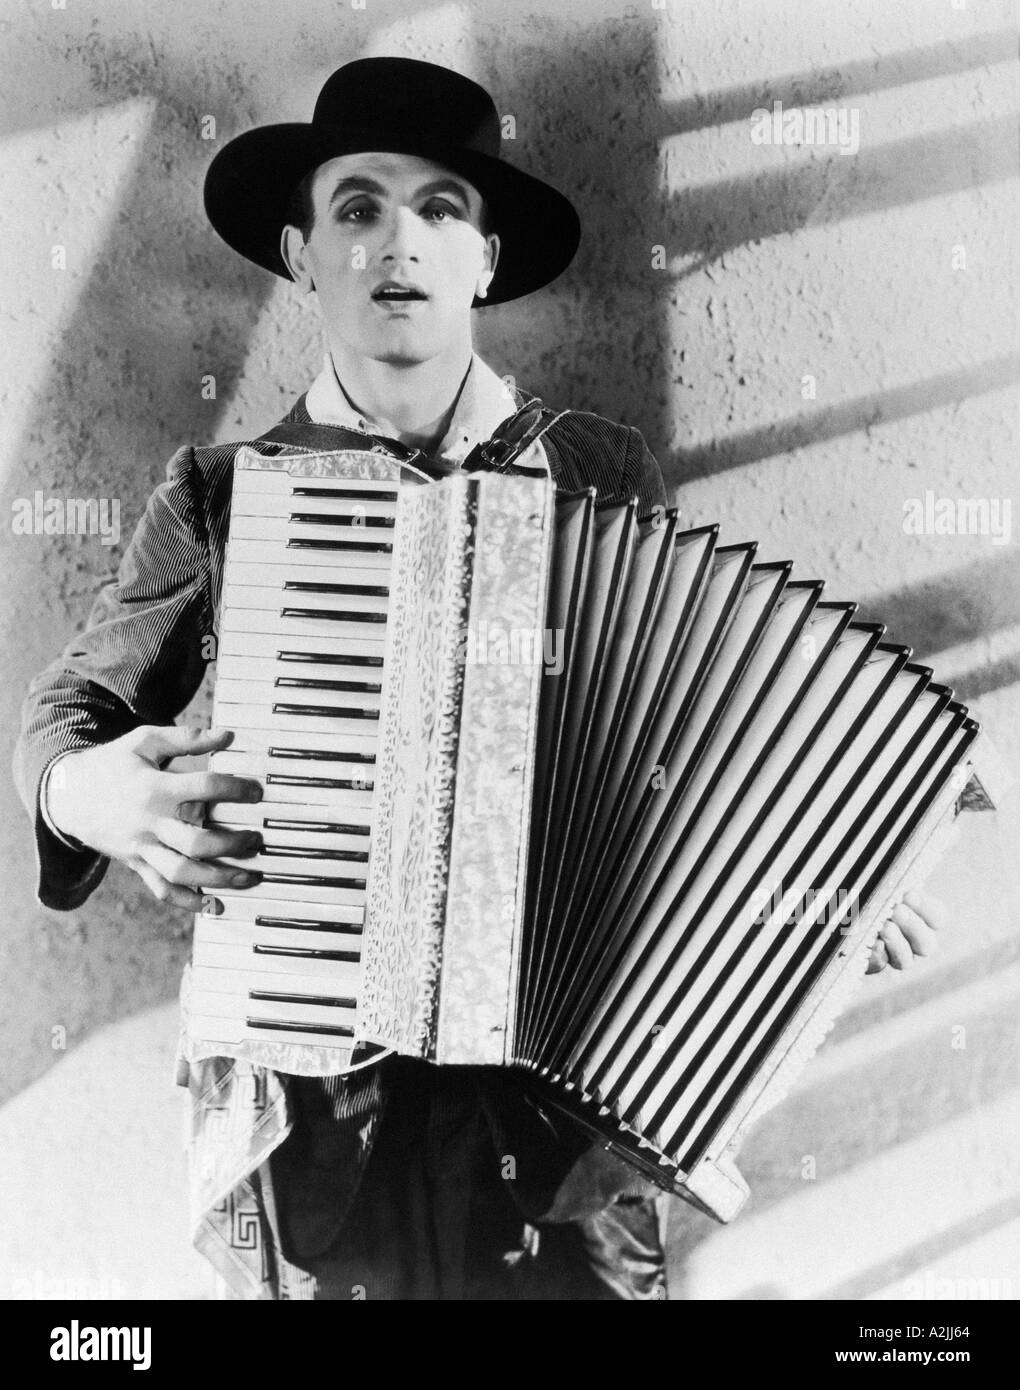 ARTHUR TRACY 1930s actor singer - Stock Image